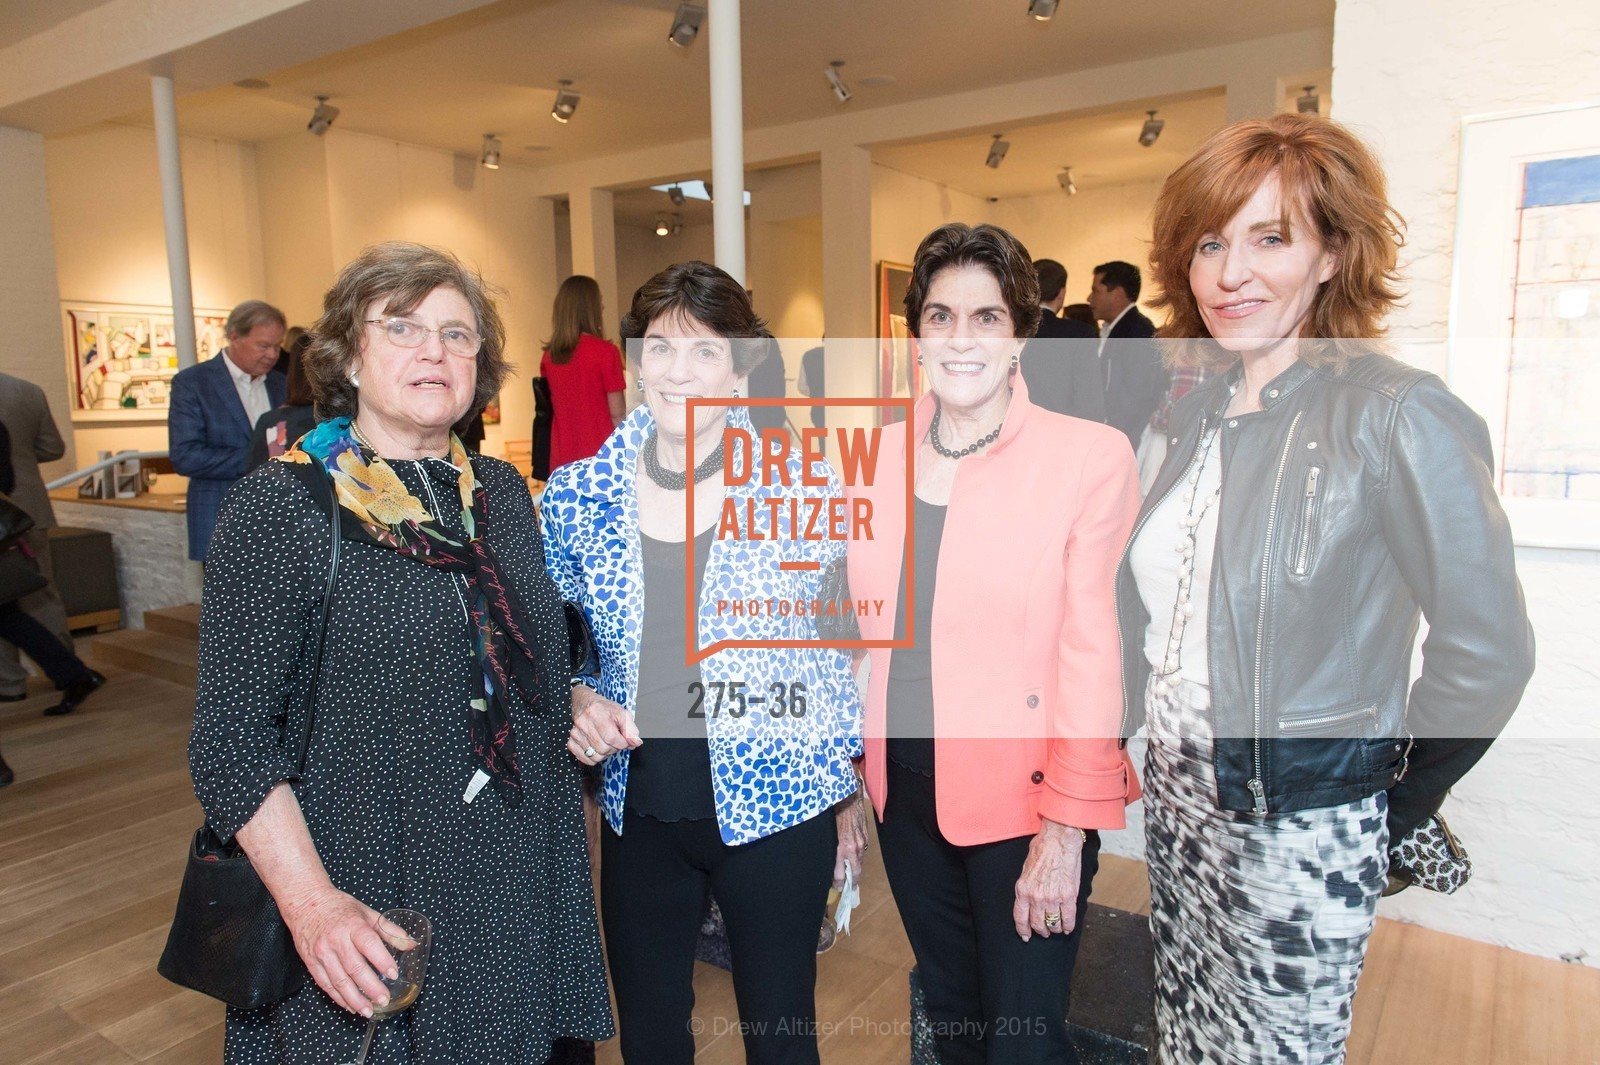 Daphne Bransten, Penny Eisle, Francie Steimer, Brenda Jewett, Post War and Contemporary preview at Hedge Gallery , Hedge Gallery. 501 Pacific Ave, San Francisco, CA 94133, April 16th, 2015,Drew Altizer, Drew Altizer Photography, full-service agency, private events, San Francisco photographer, photographer california